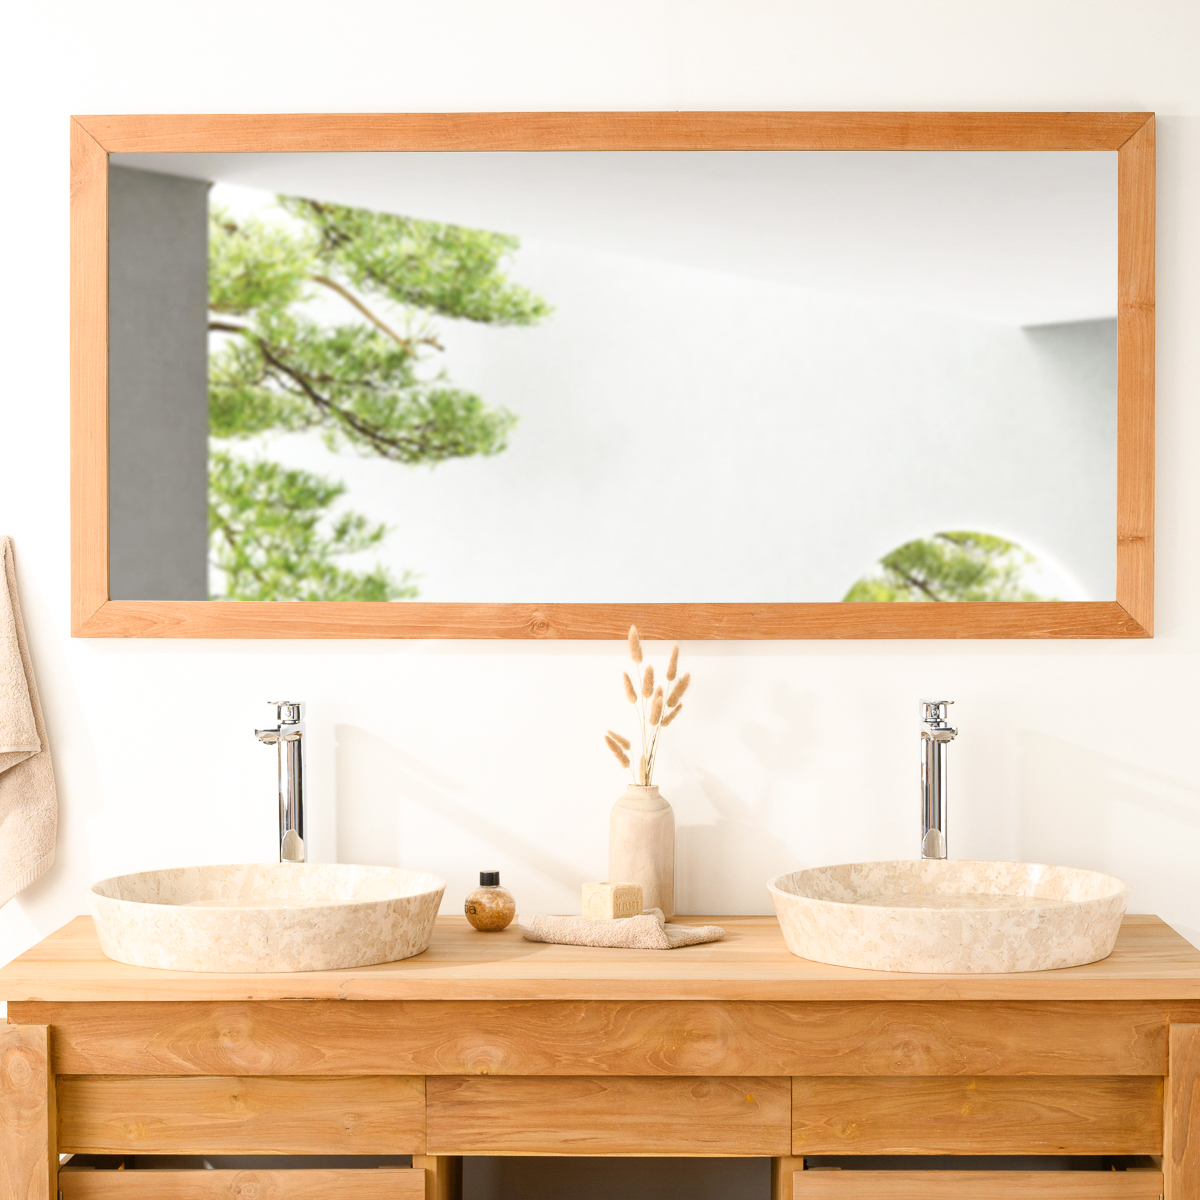 Grand miroir rectangle en teck massif 145x70 - Grand miroir de salon ...